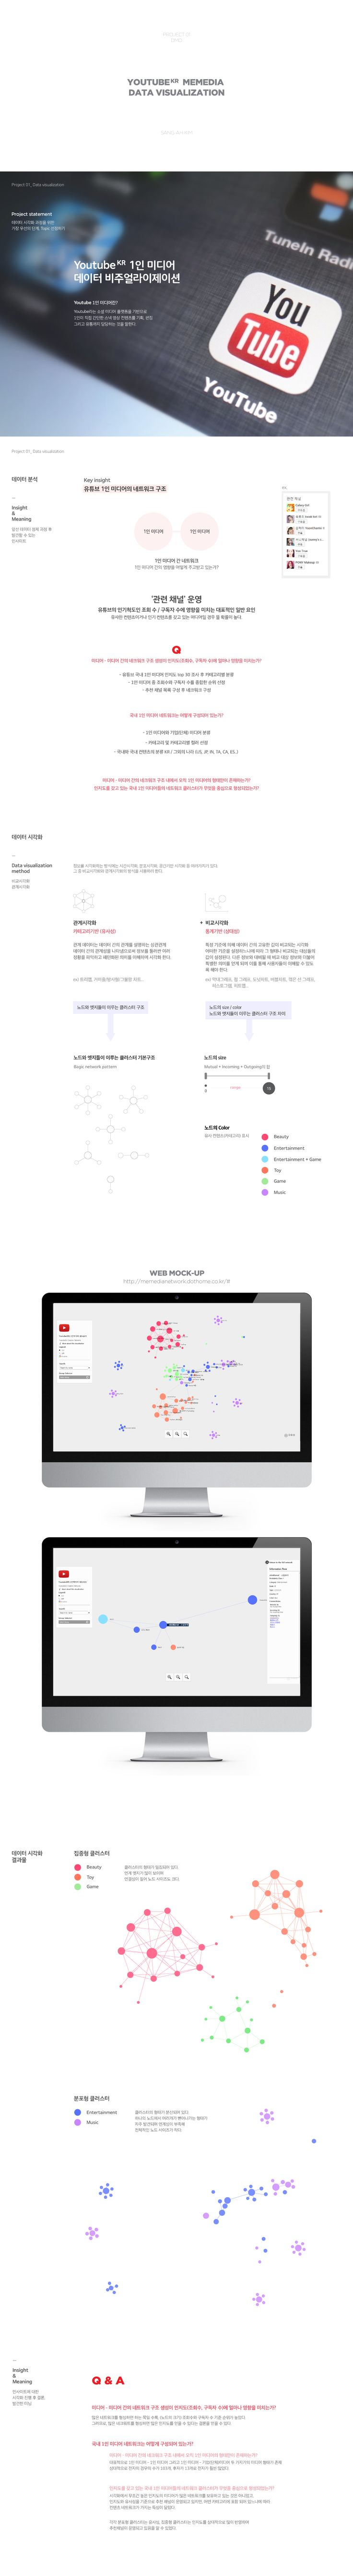 Youtube kr data visualization